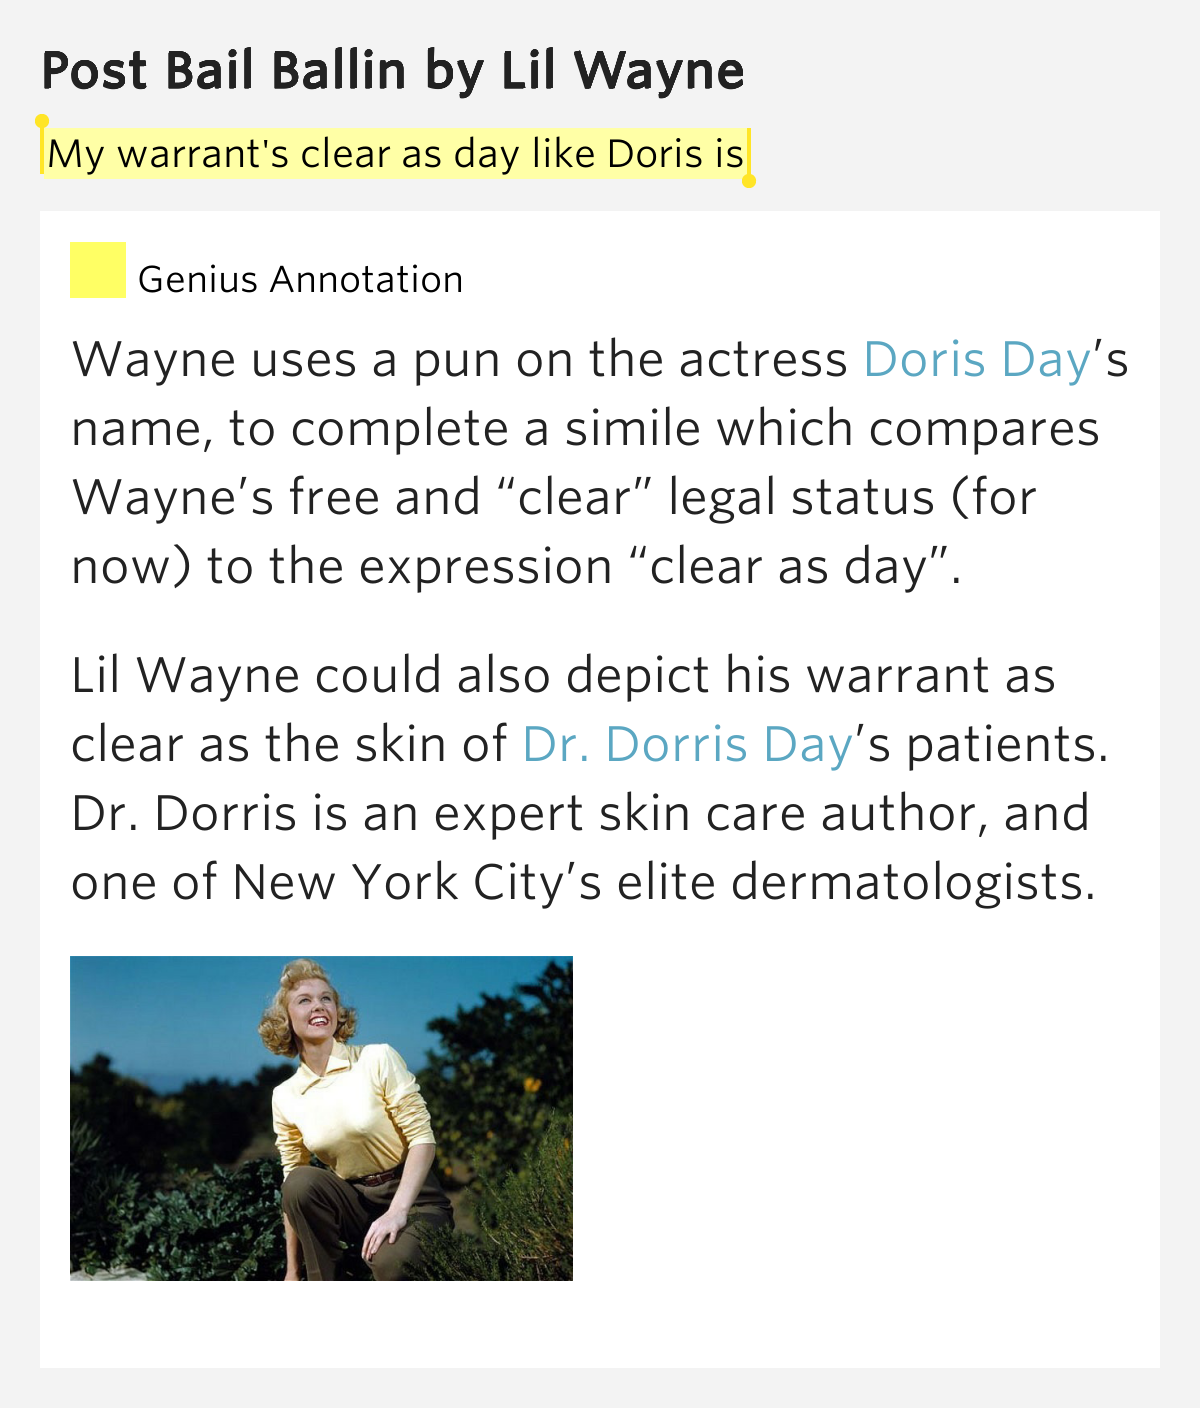 Post Meaning: My Warrant's Clear As Day Like Doris Is